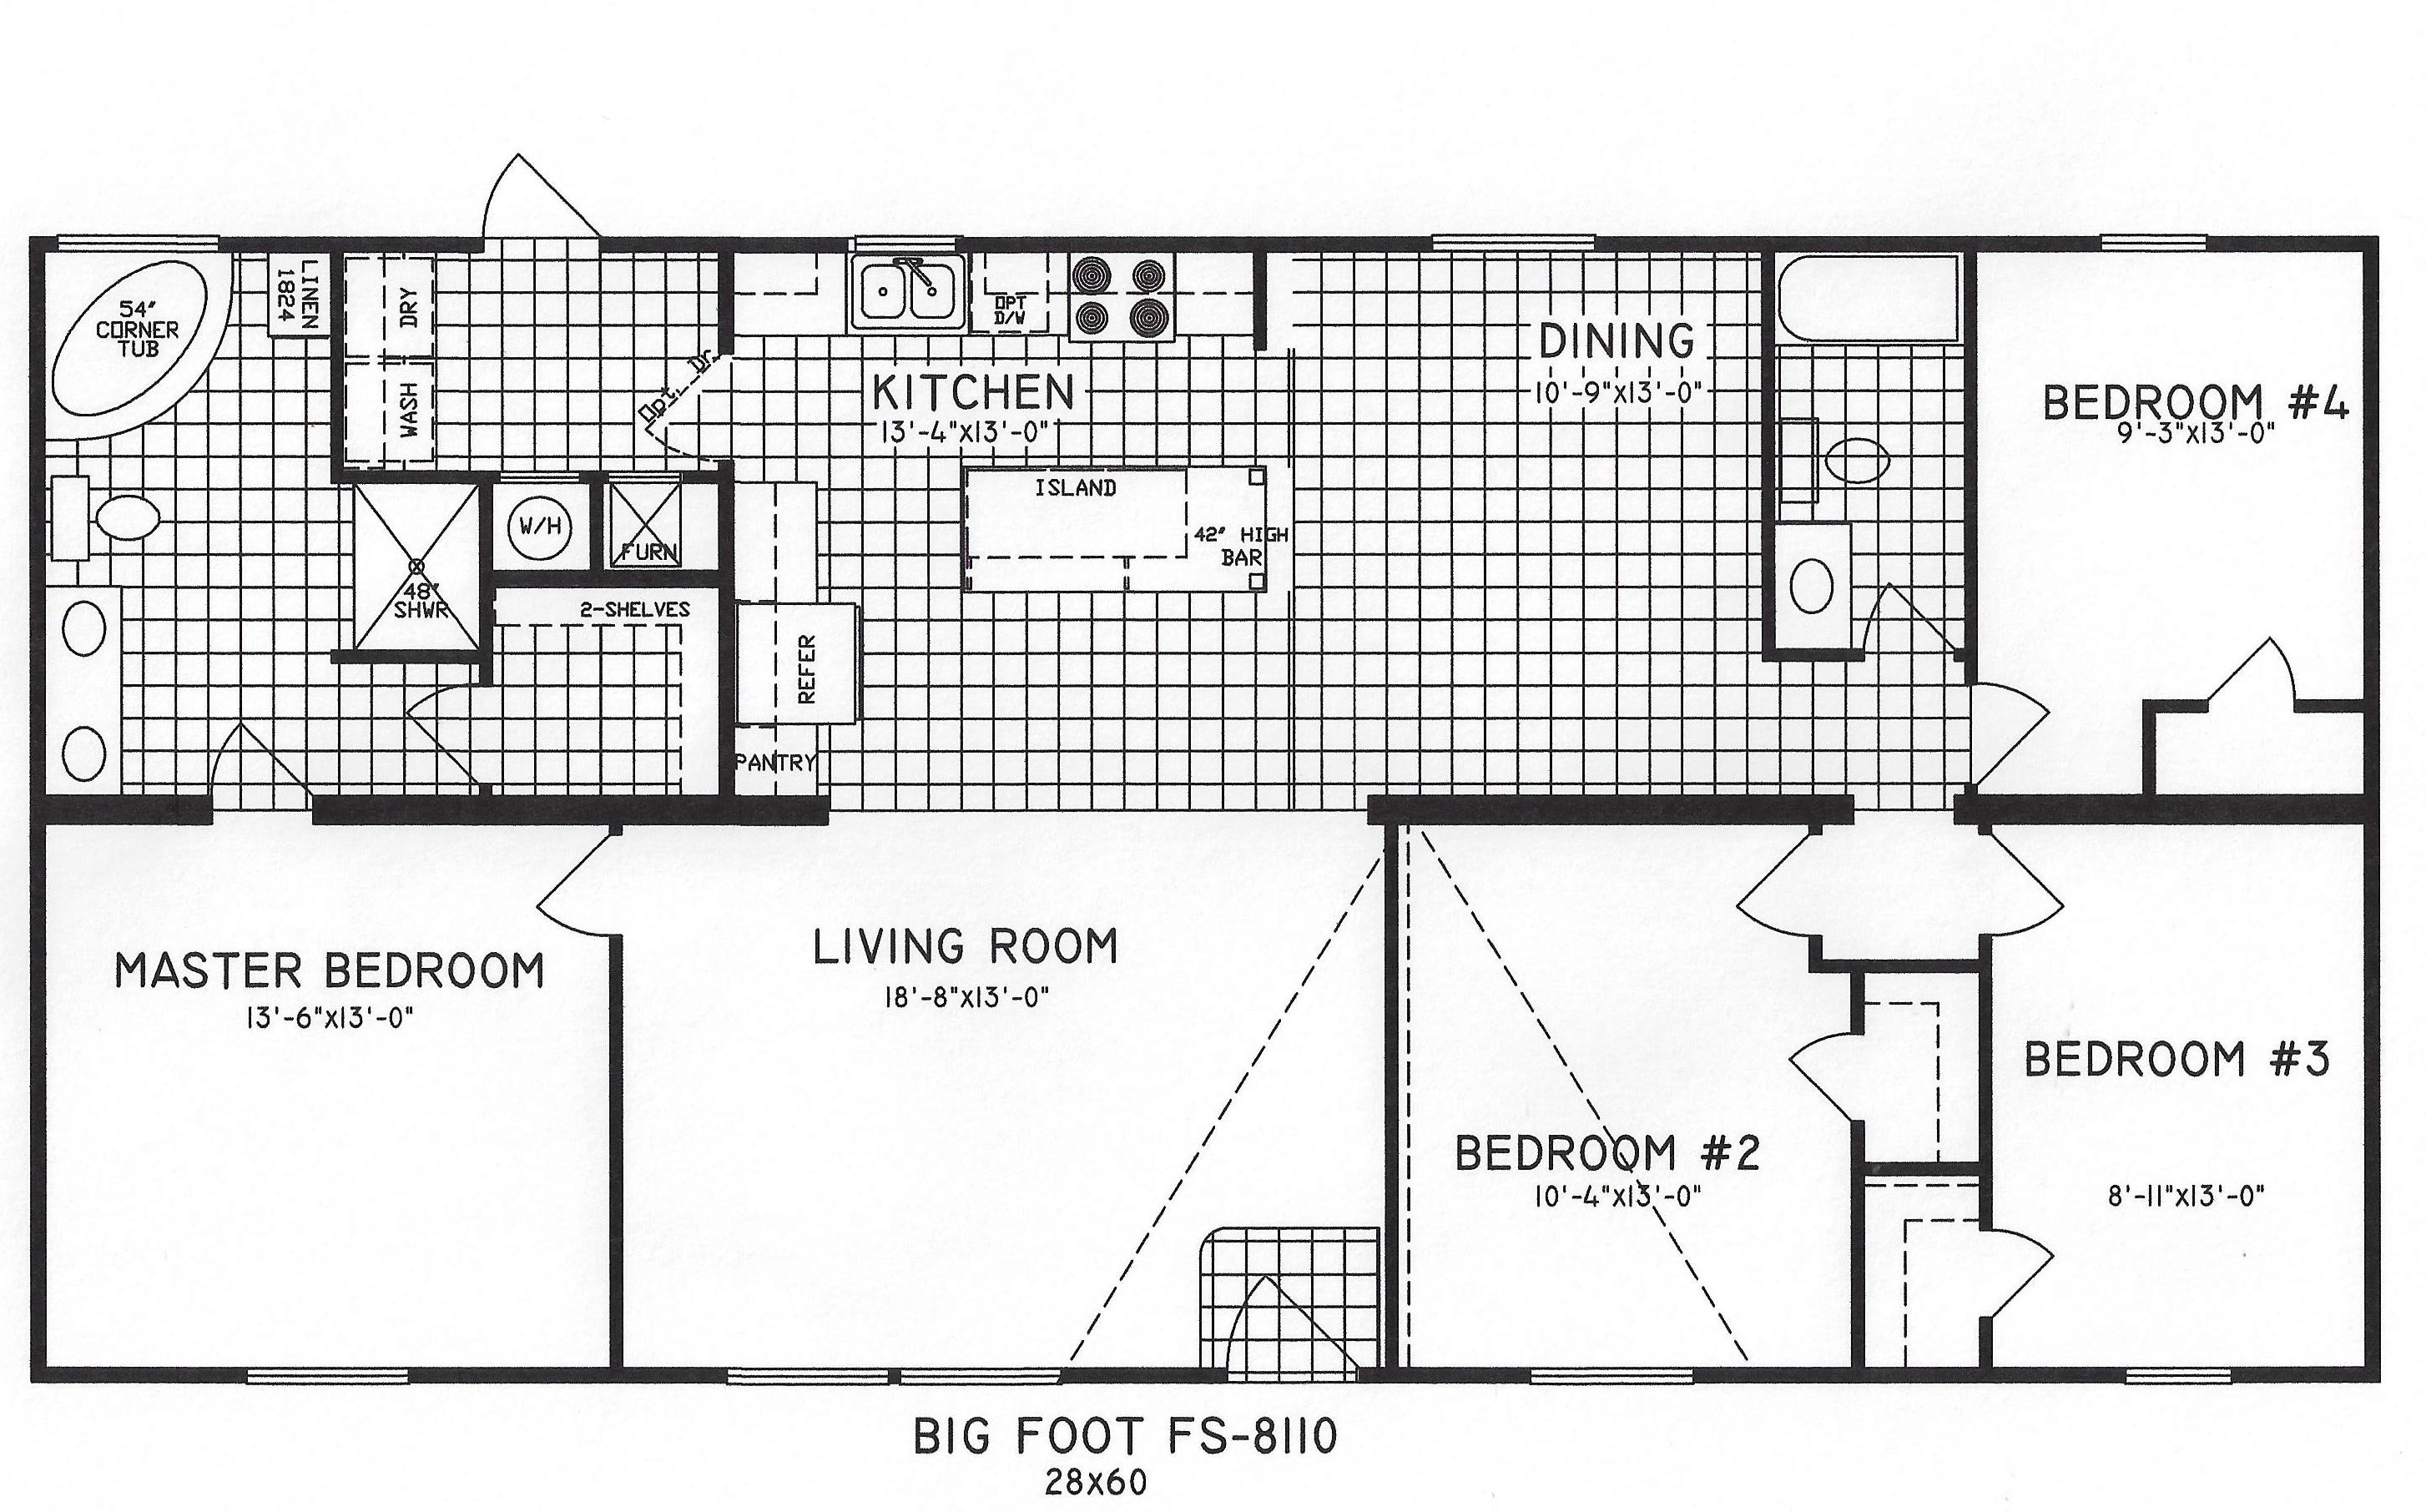 4 bedroom floor plan c 8110 hawks homes manufactured modular conway little rock arkansas - Bedroom floor plans homes ...